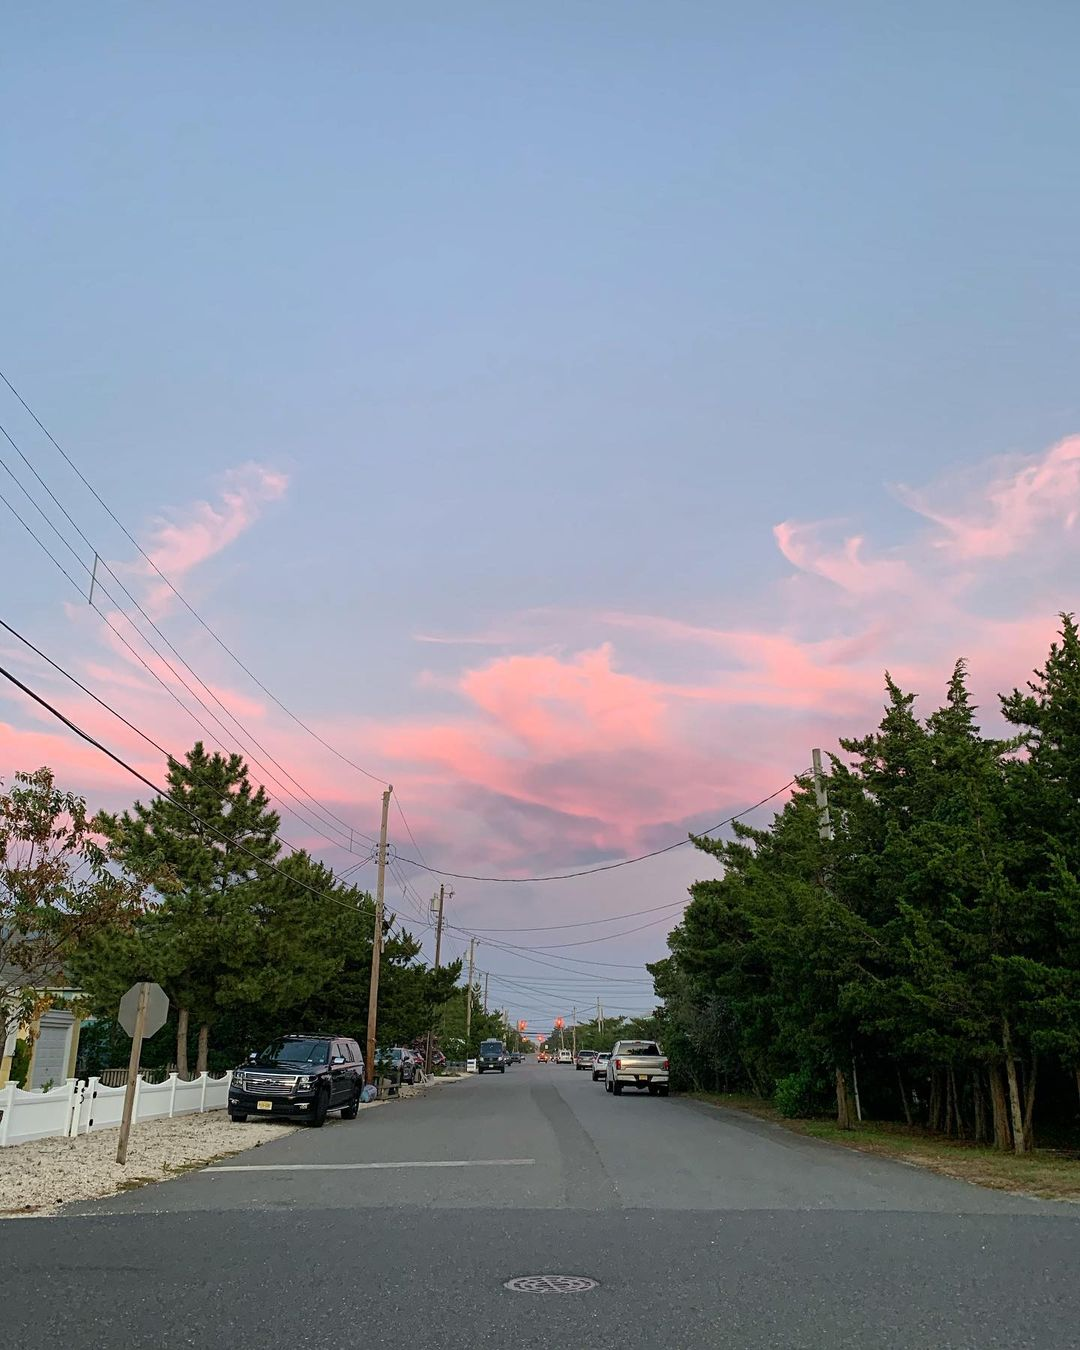 LBI Missing these cotton candy skies…but excited to maybe see some snow      …